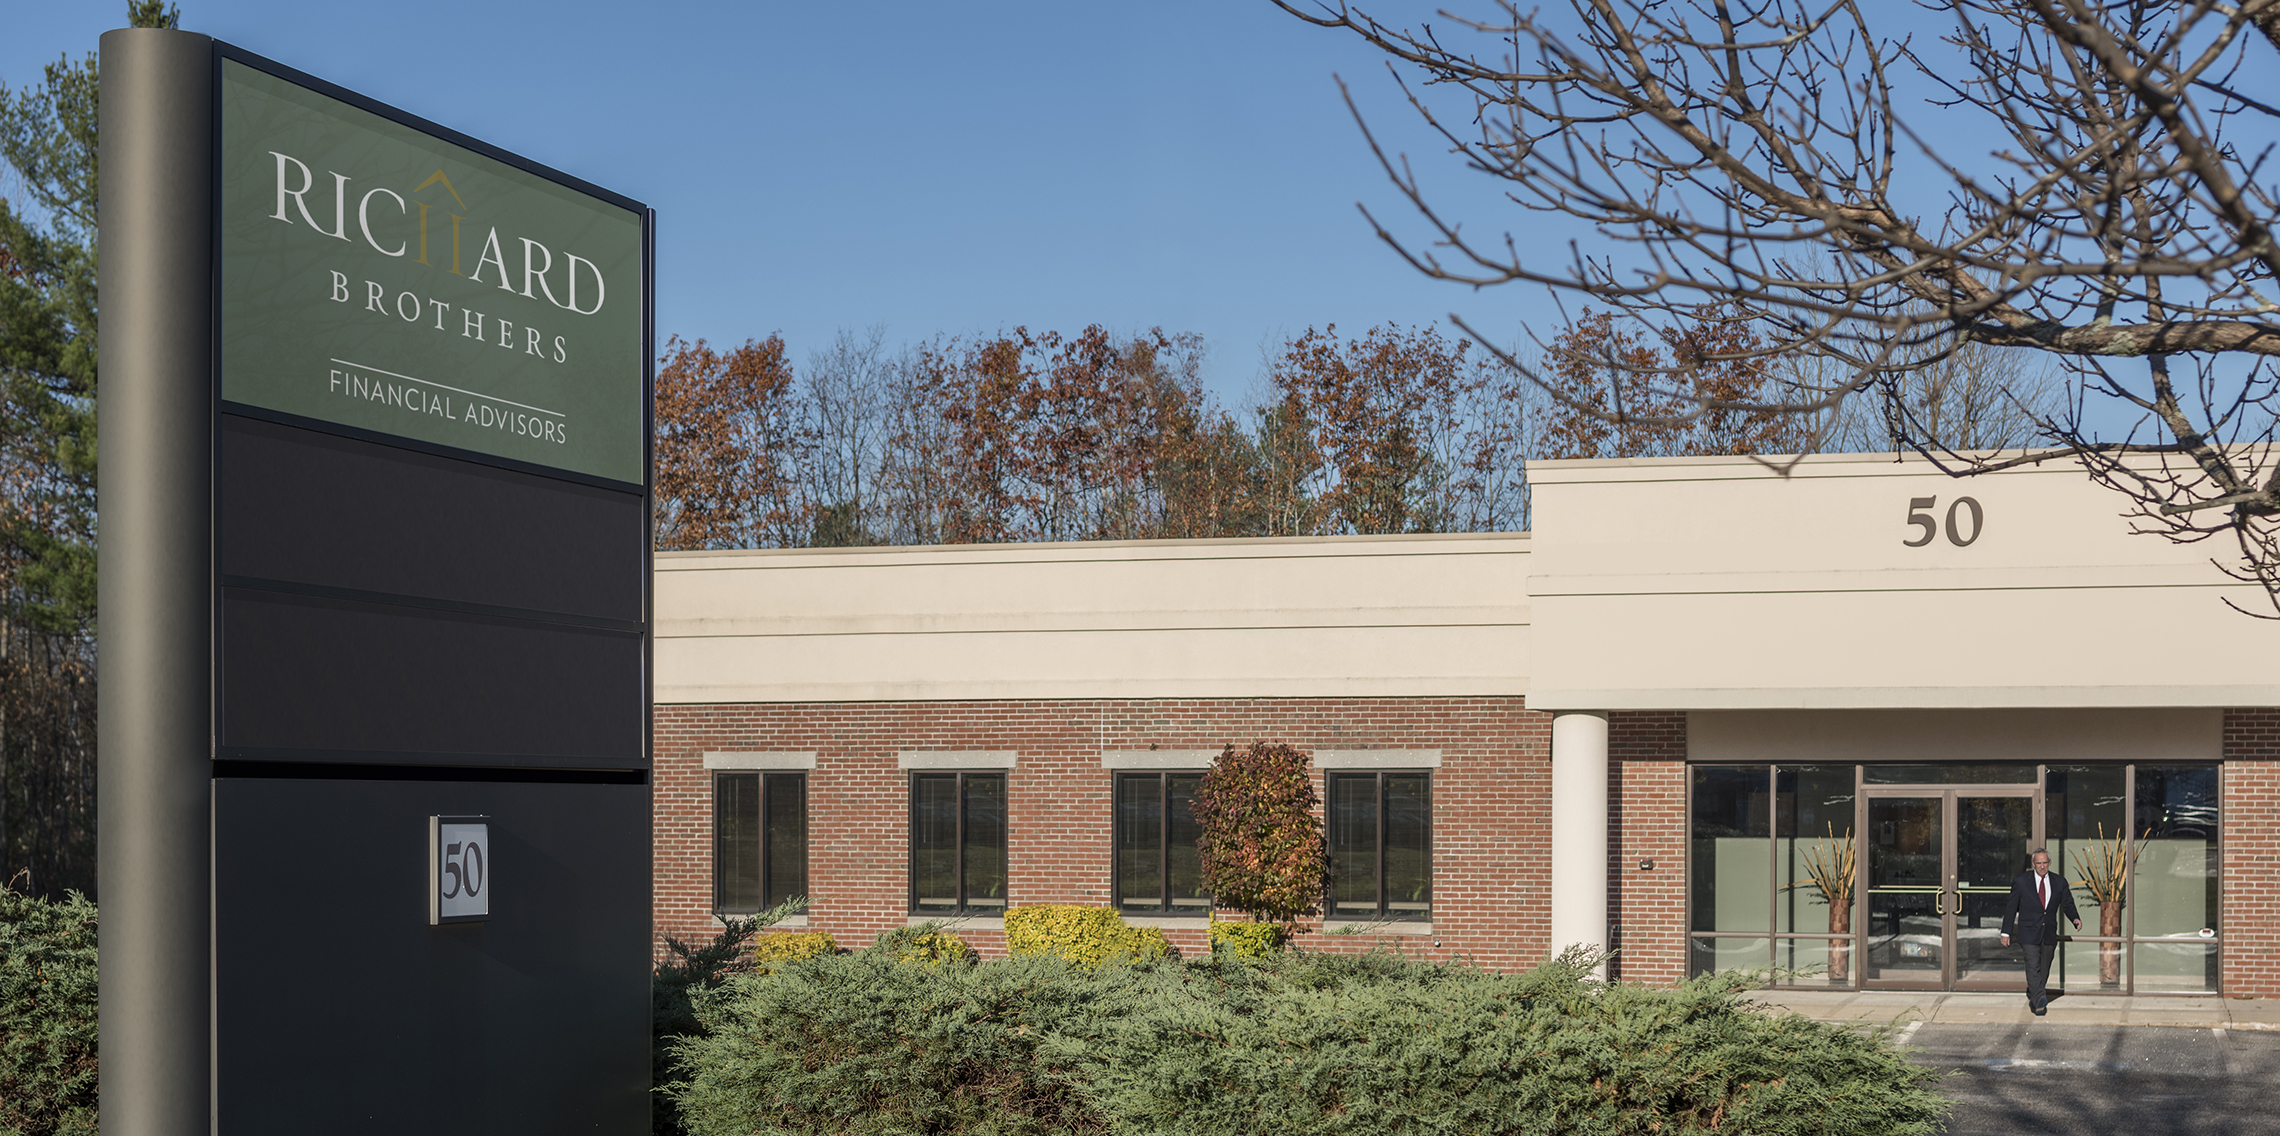 Richard Brothers Financial Advisors Office Location